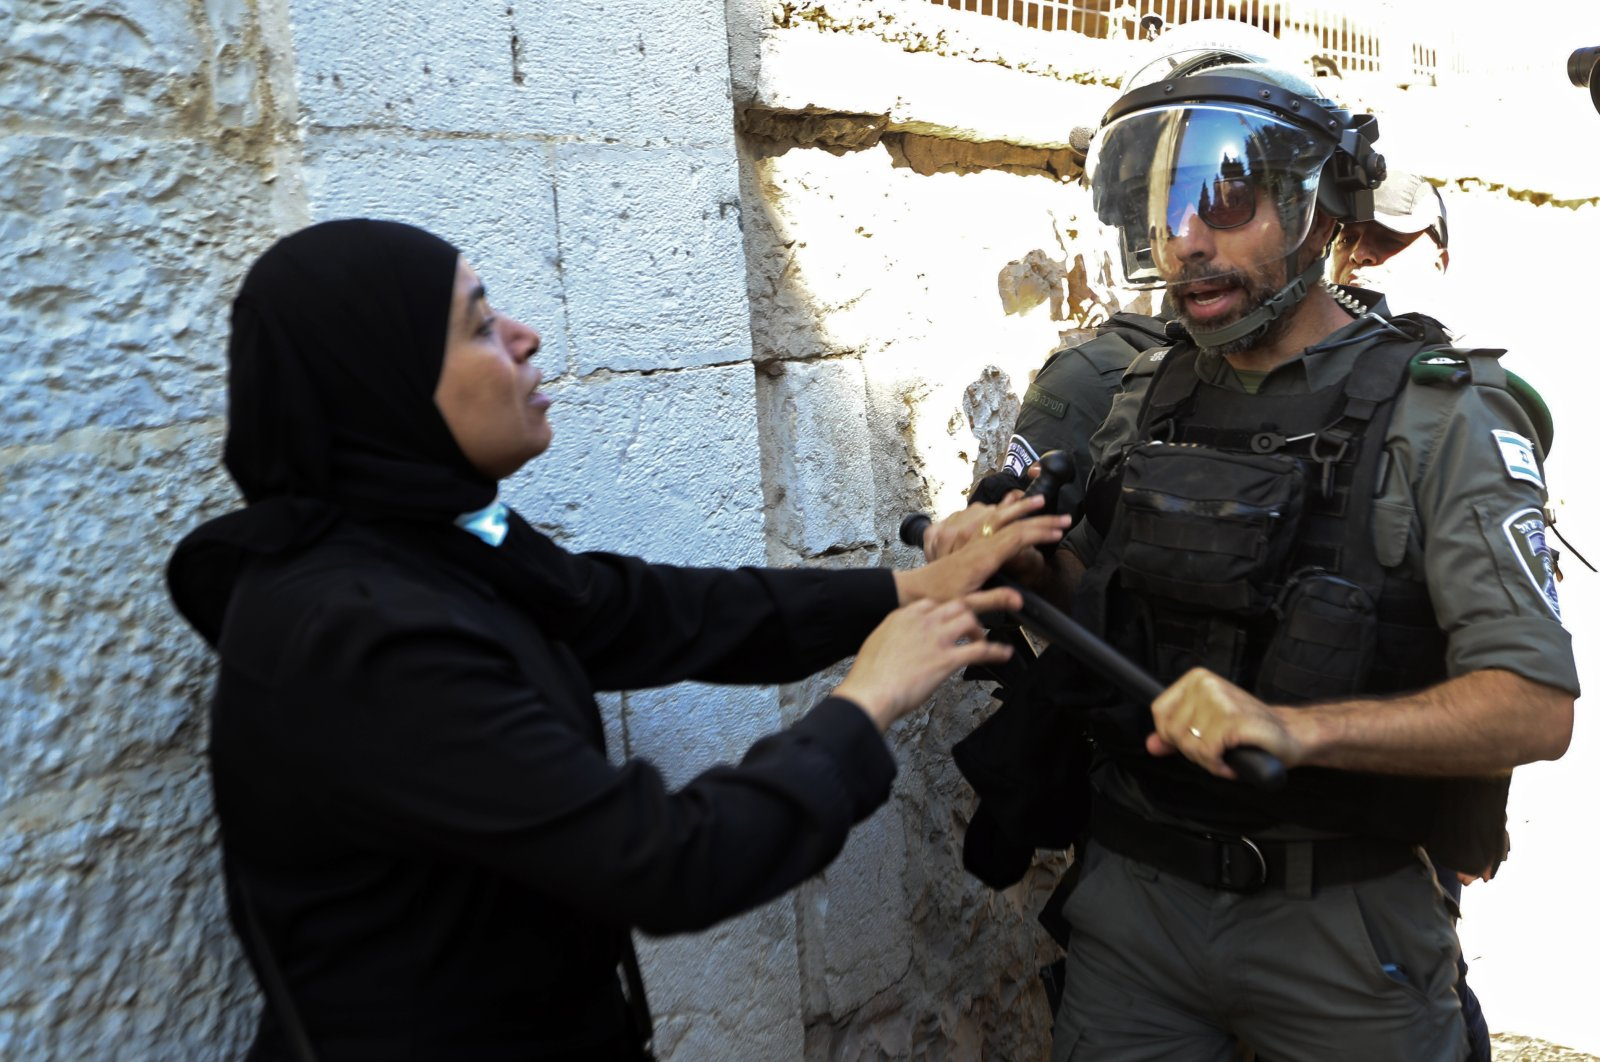 An Israeli police officer and a Palestinian woman scuffle during clashes that erupted ahead of a planned march by Jewish ultranationalists through East Jerusalem, outside Jerusalem's Old City, Tuesday, June 15, 2021. (AP Photo)